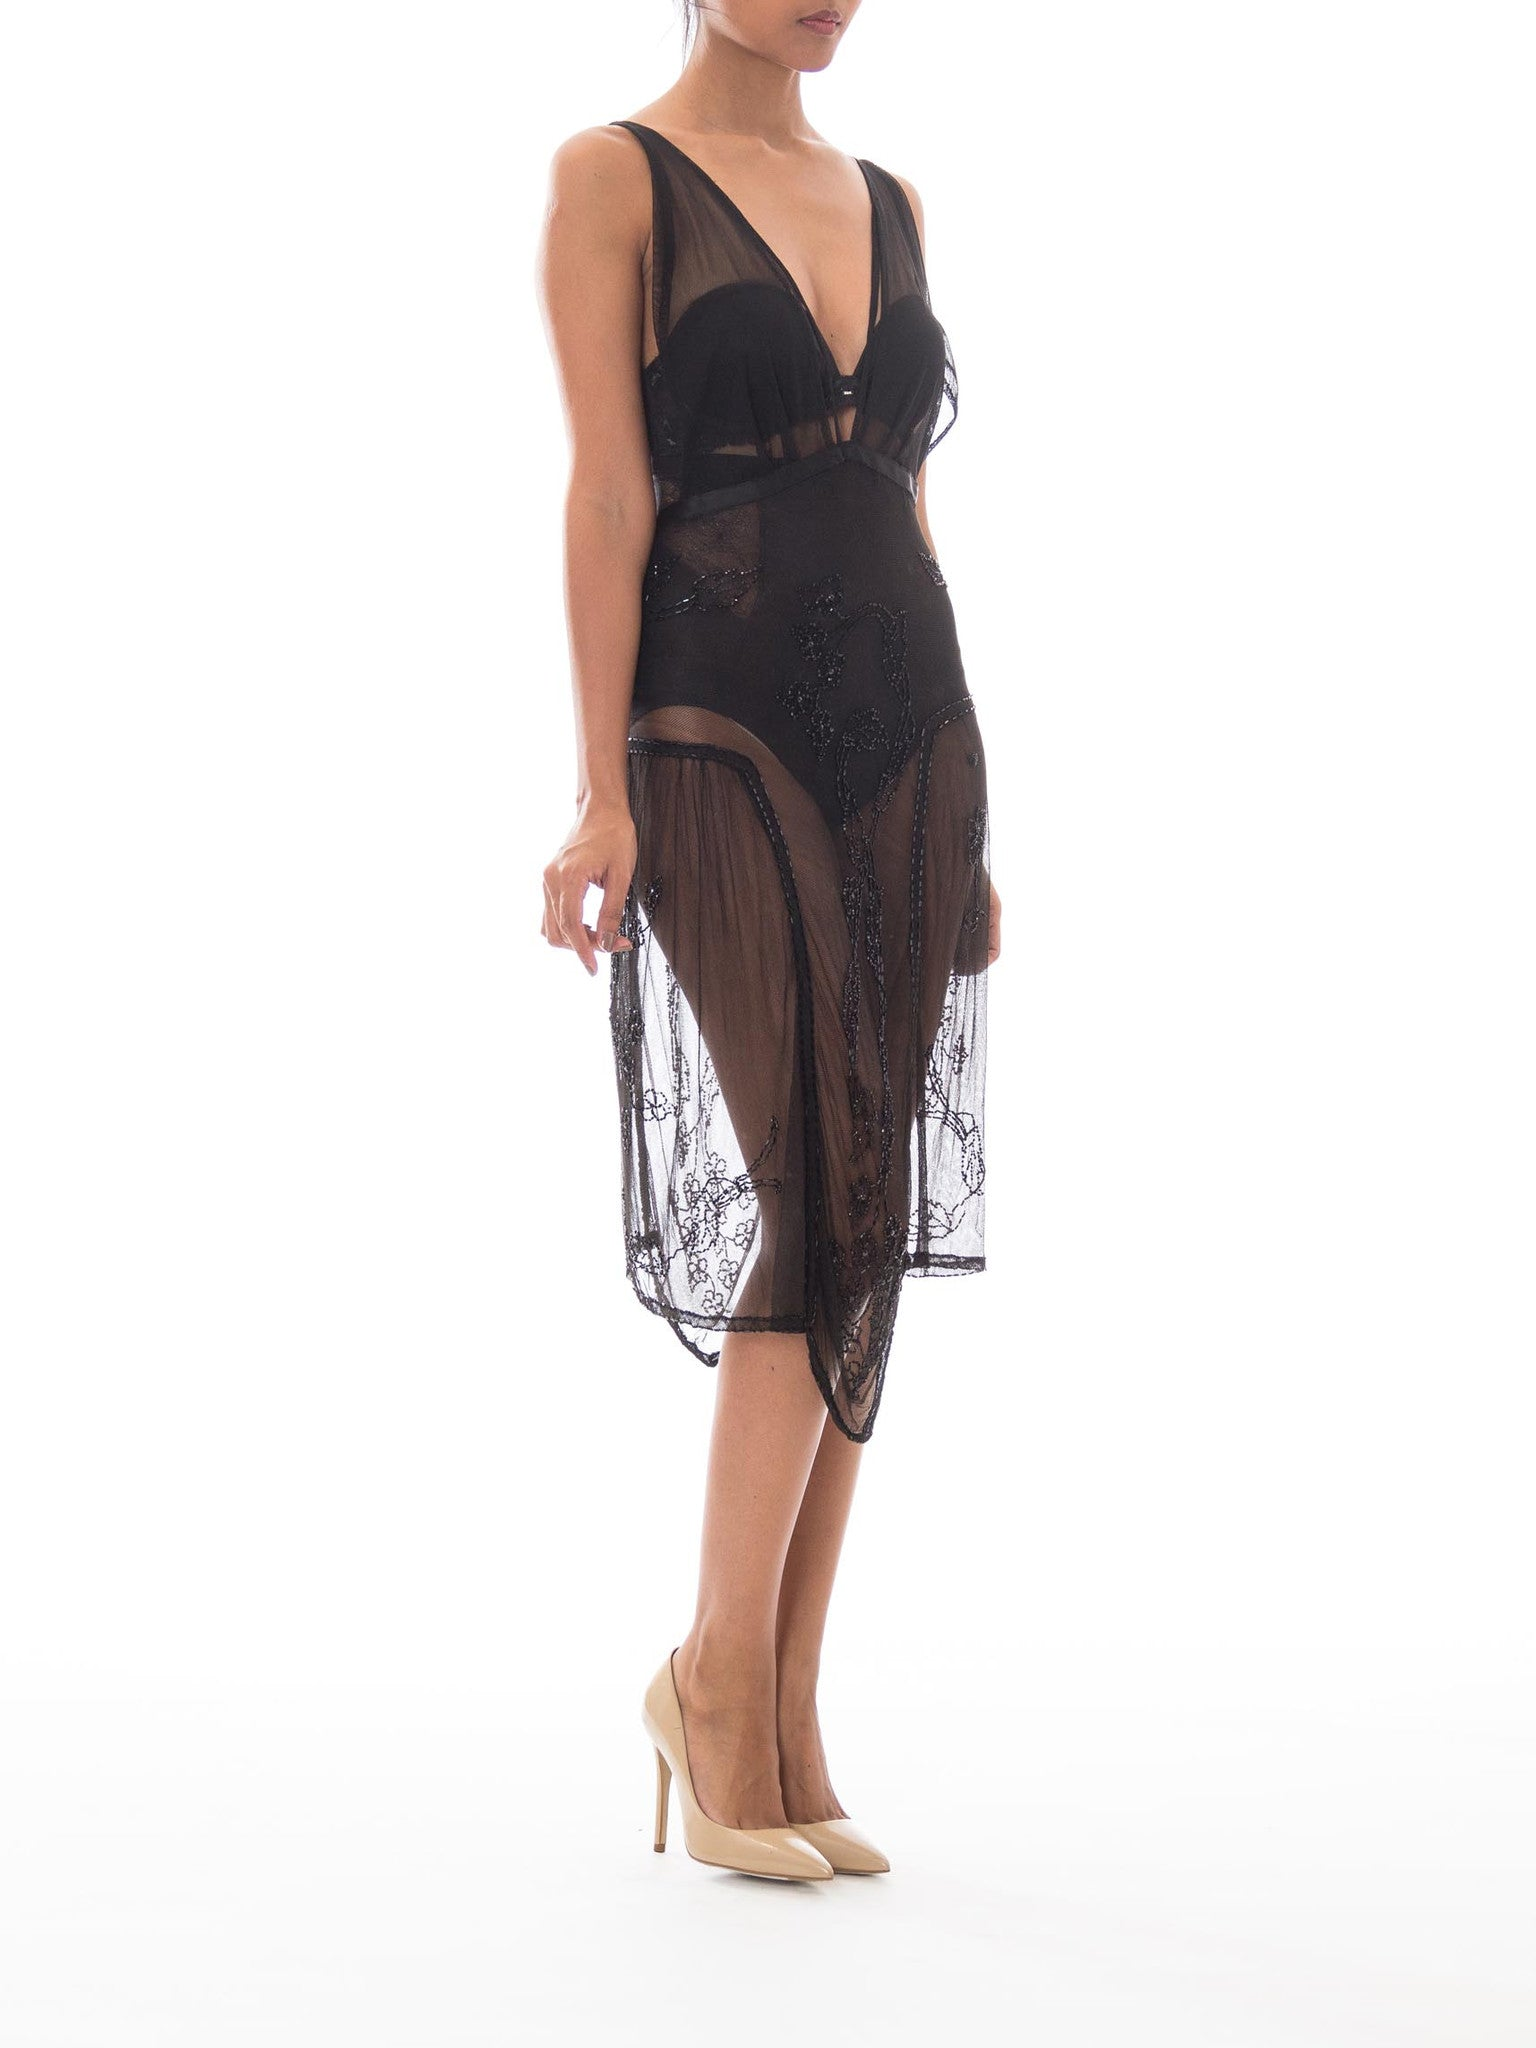 MORPHEW COLLECTION Black Hand Beaded Silk Tulle Sheer Dress Made W/ Edwardian Lace From 1910